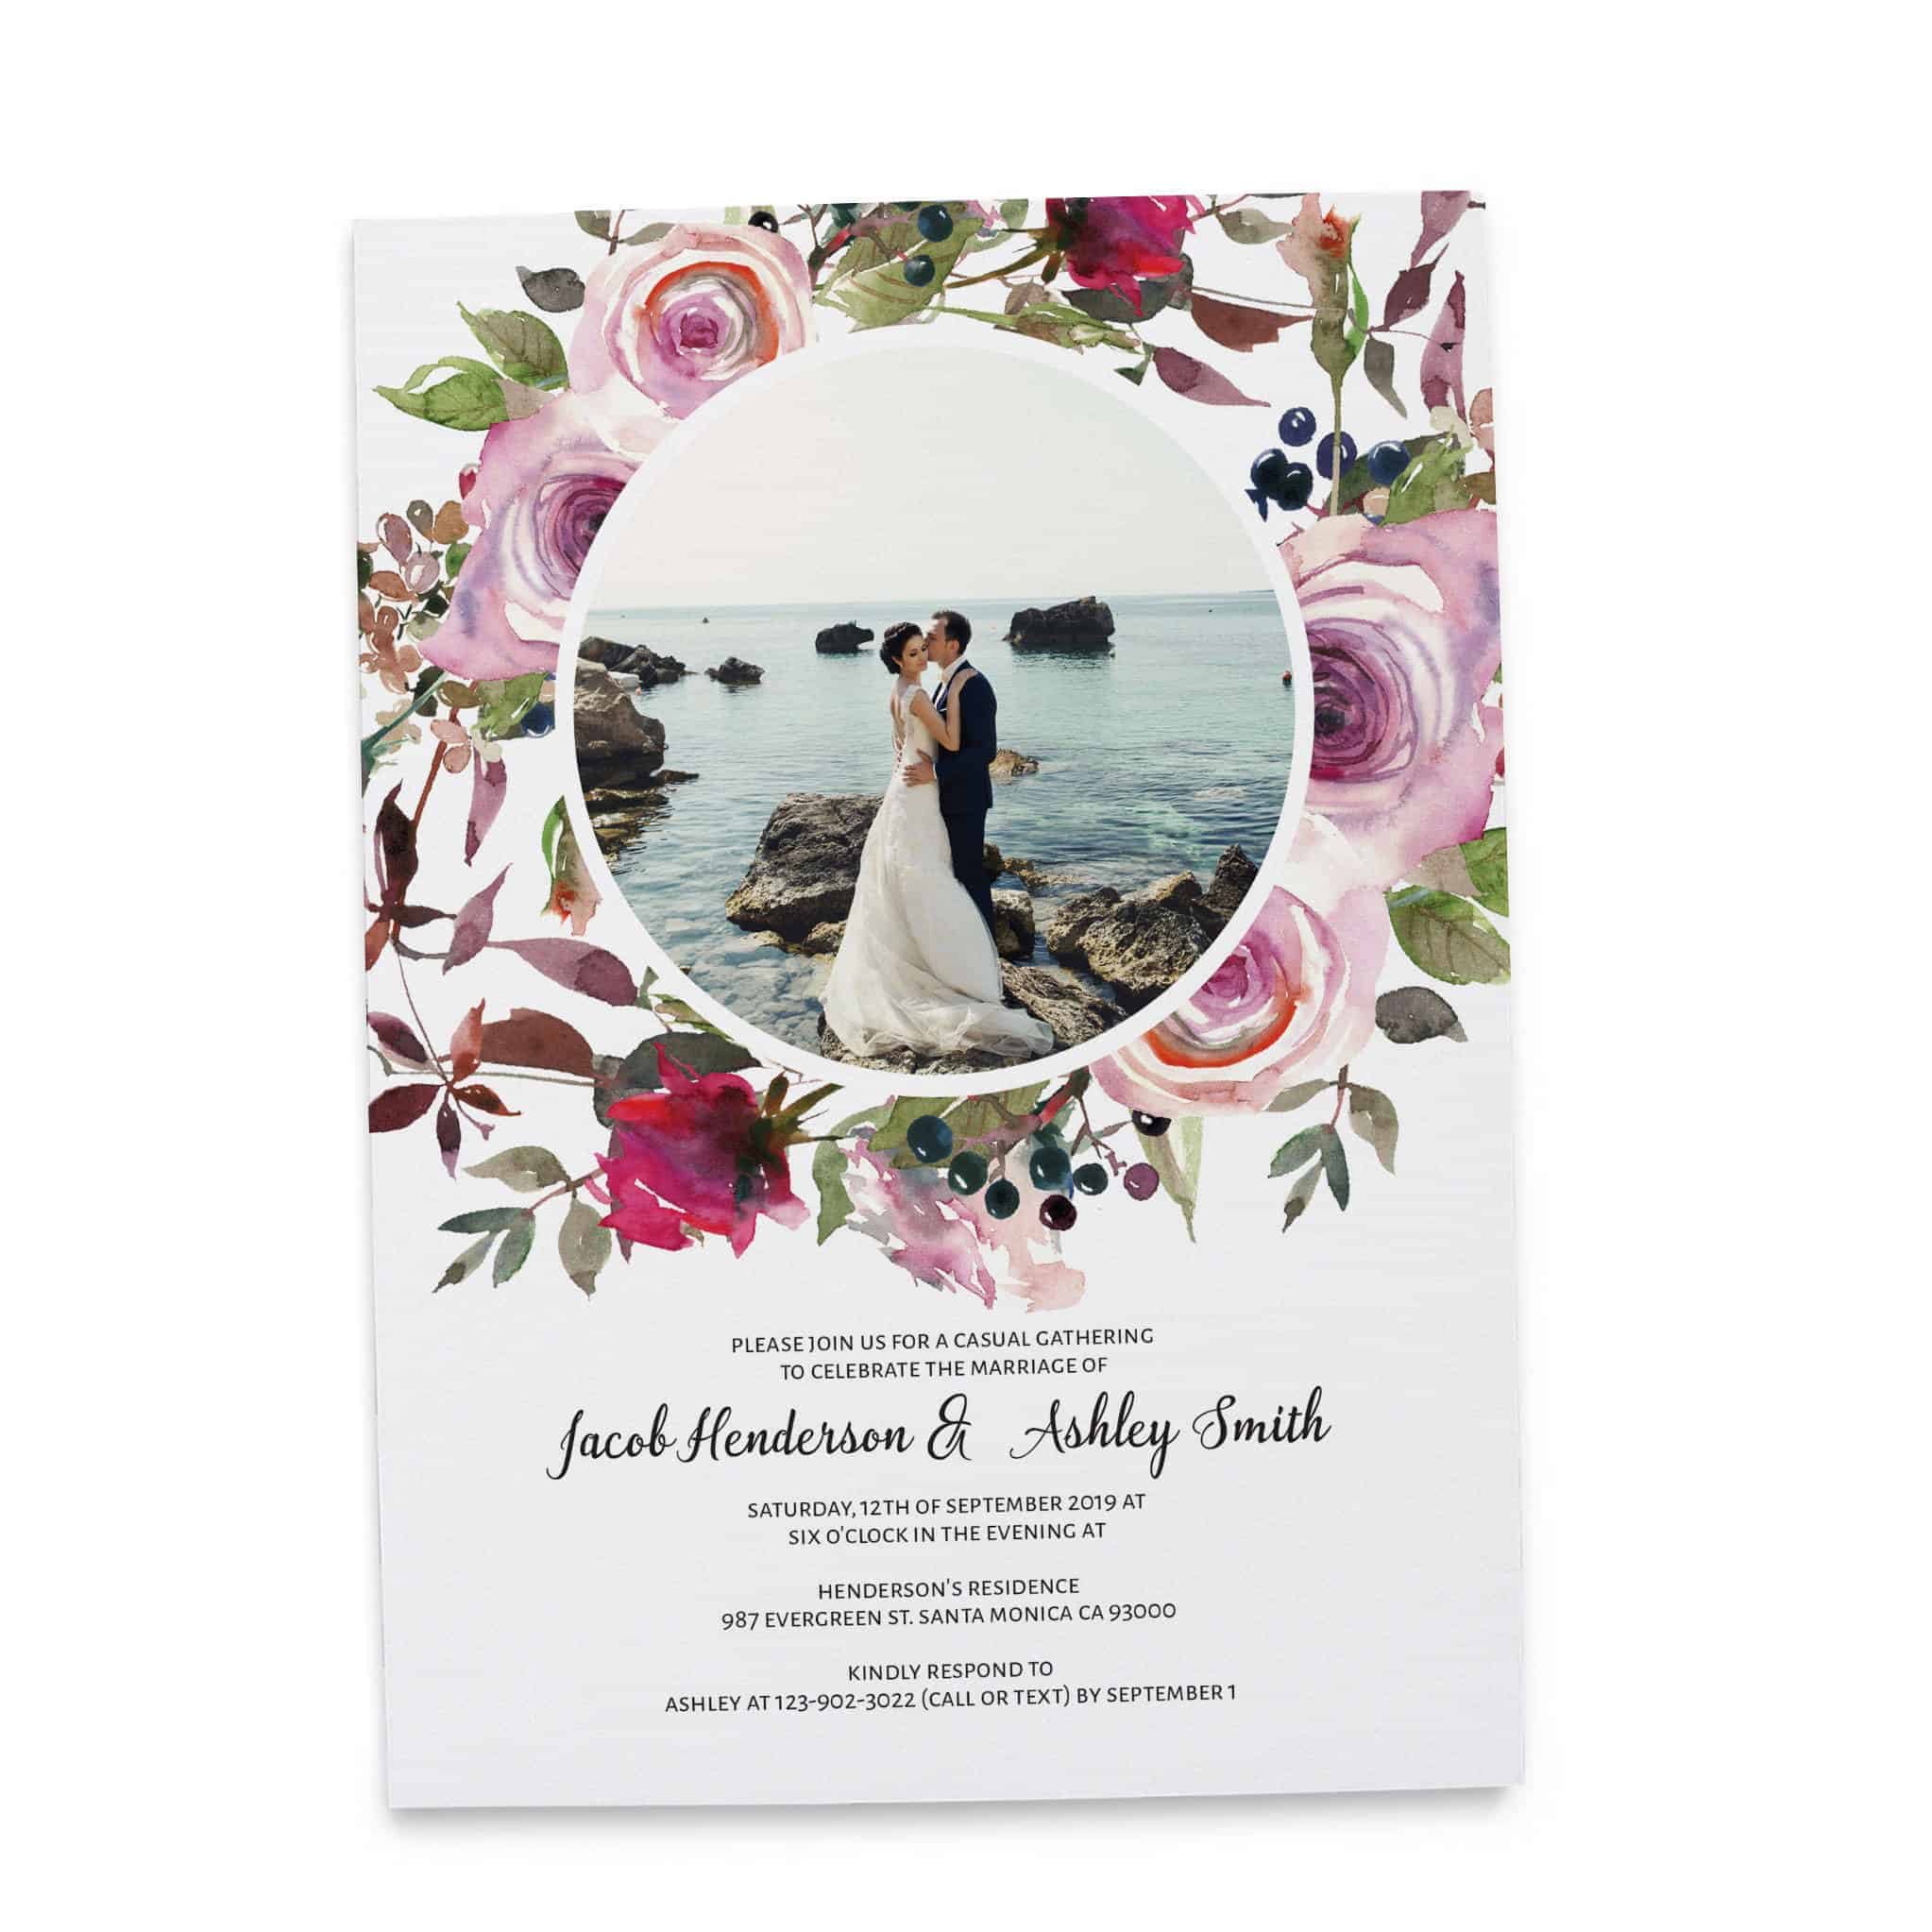 Elegant Wedding Reception Invitation Cards, Add Your Own Photo, Elopement Wedding Casual BBQ Party Cards elopement100